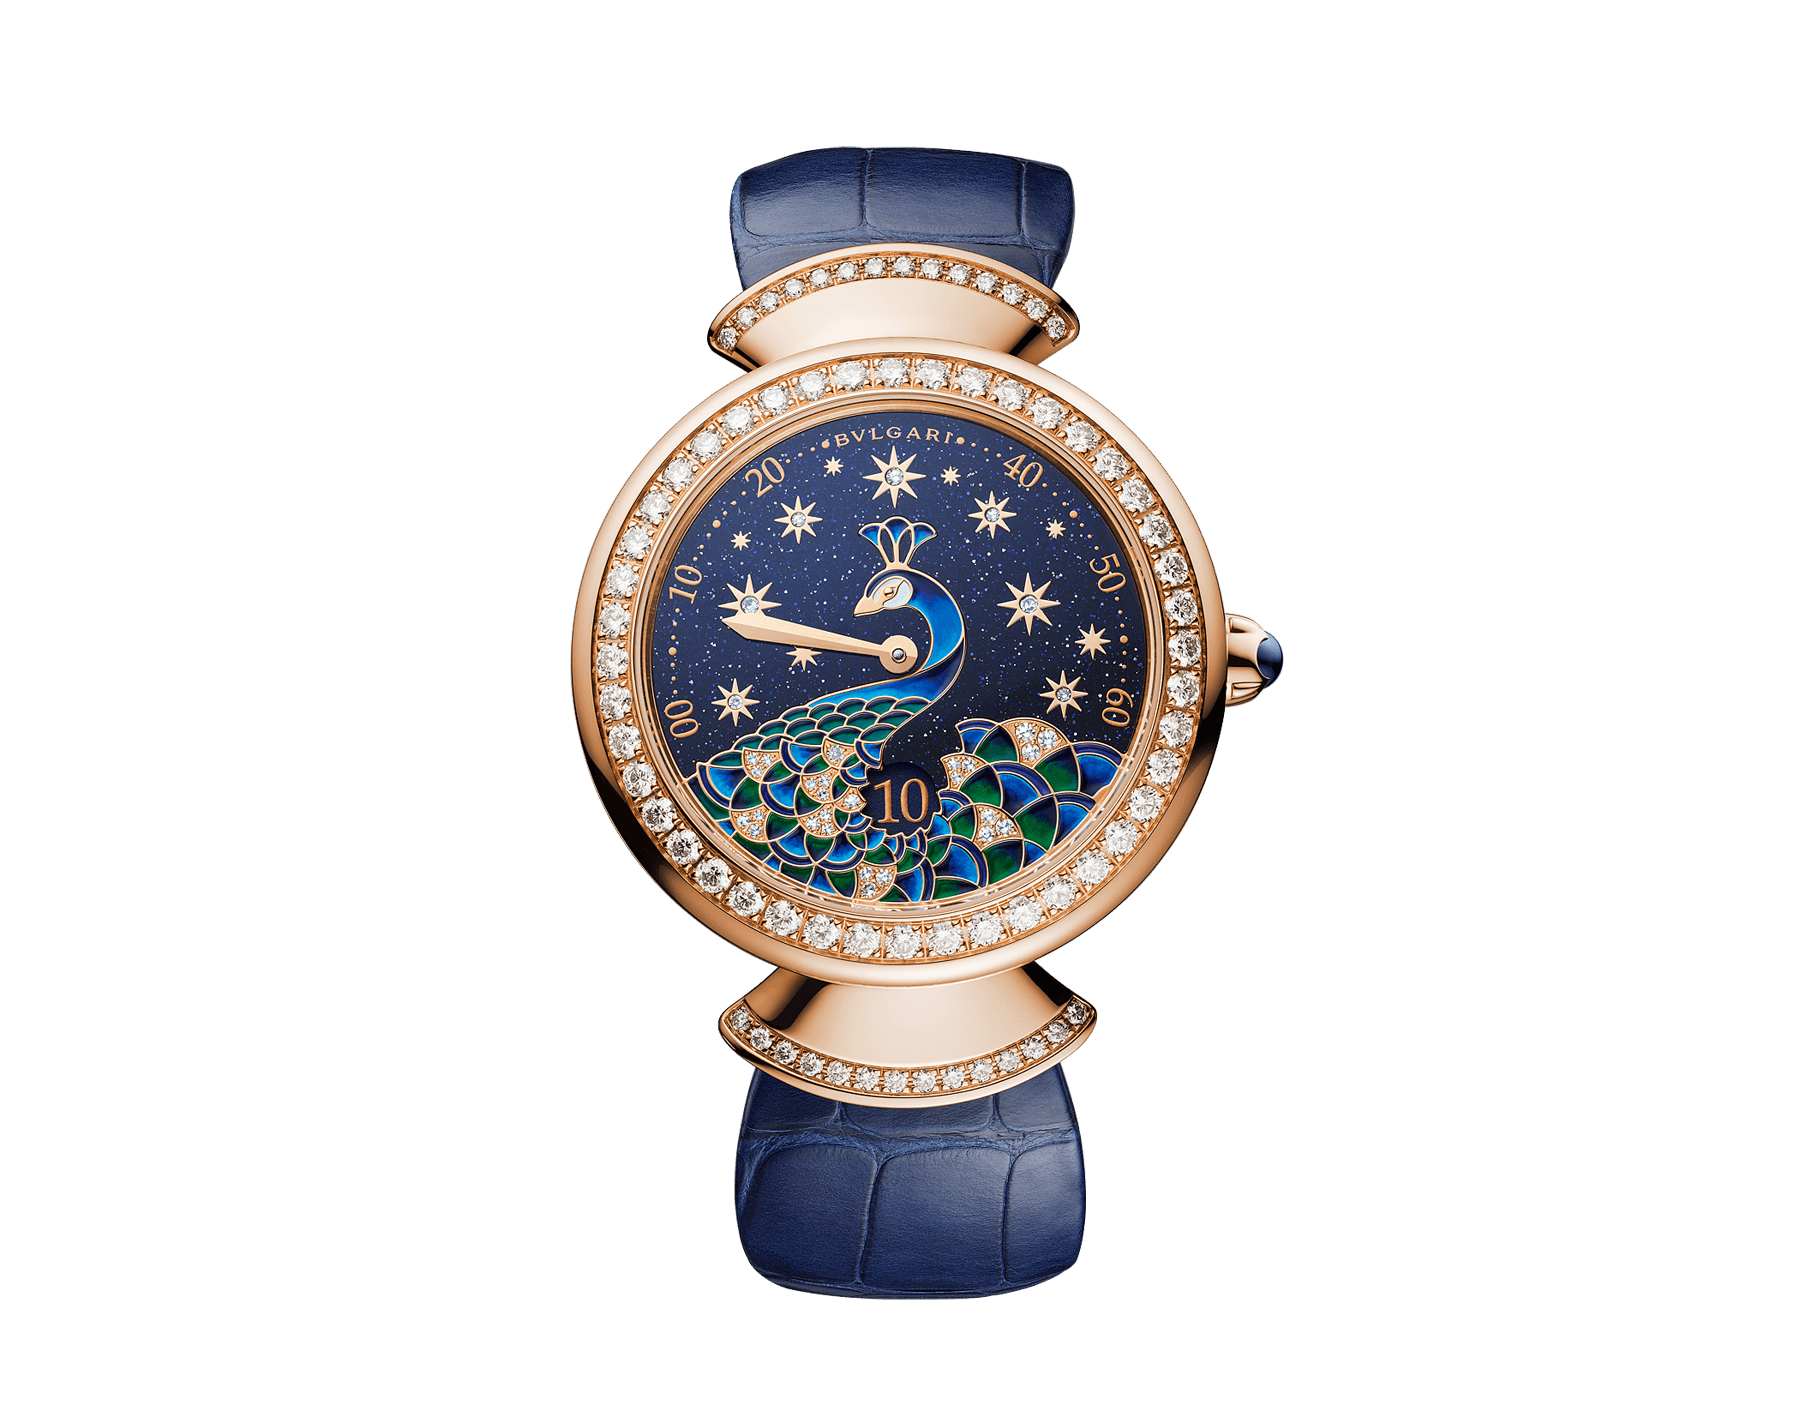 DIVAS' DREAM watch with mechanical manufacture movement, automatic winding, jumping hours and retrograde minutes (180°). 18 kt rose gold case, 18 kt rose gold bezel and fan-shaped links both set with brilliant-cut diamonds, aventurine dial with miniature painted peacock, stars and indexes in brilliant-cut diamonds, blue alligator strap 103114 image 1